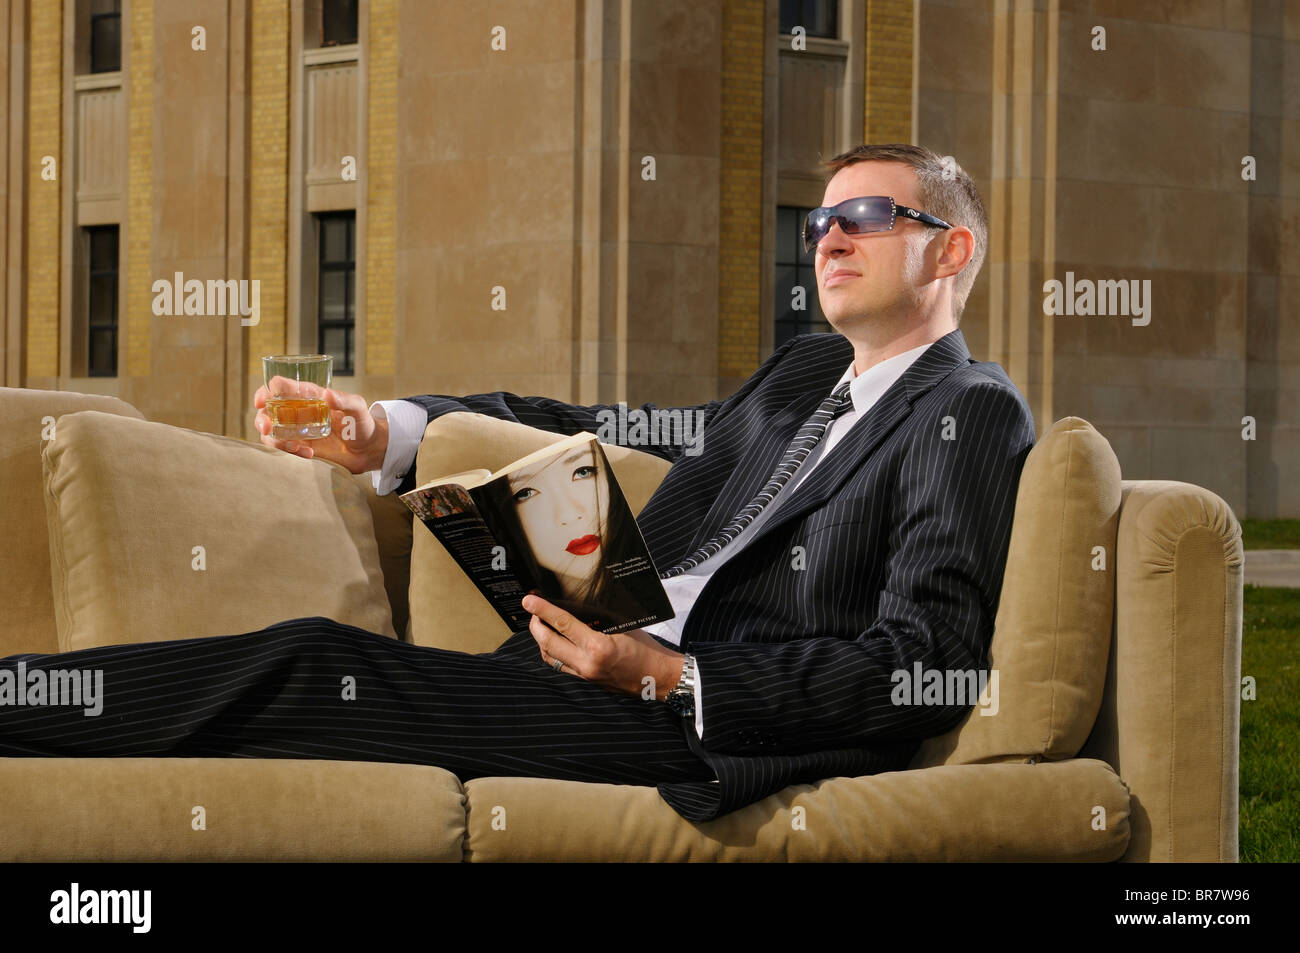 Wealthy young man in suit lying on a couch drinking and reading pulp fiction at an Art Deco mansion RC Harris water - Stock Image